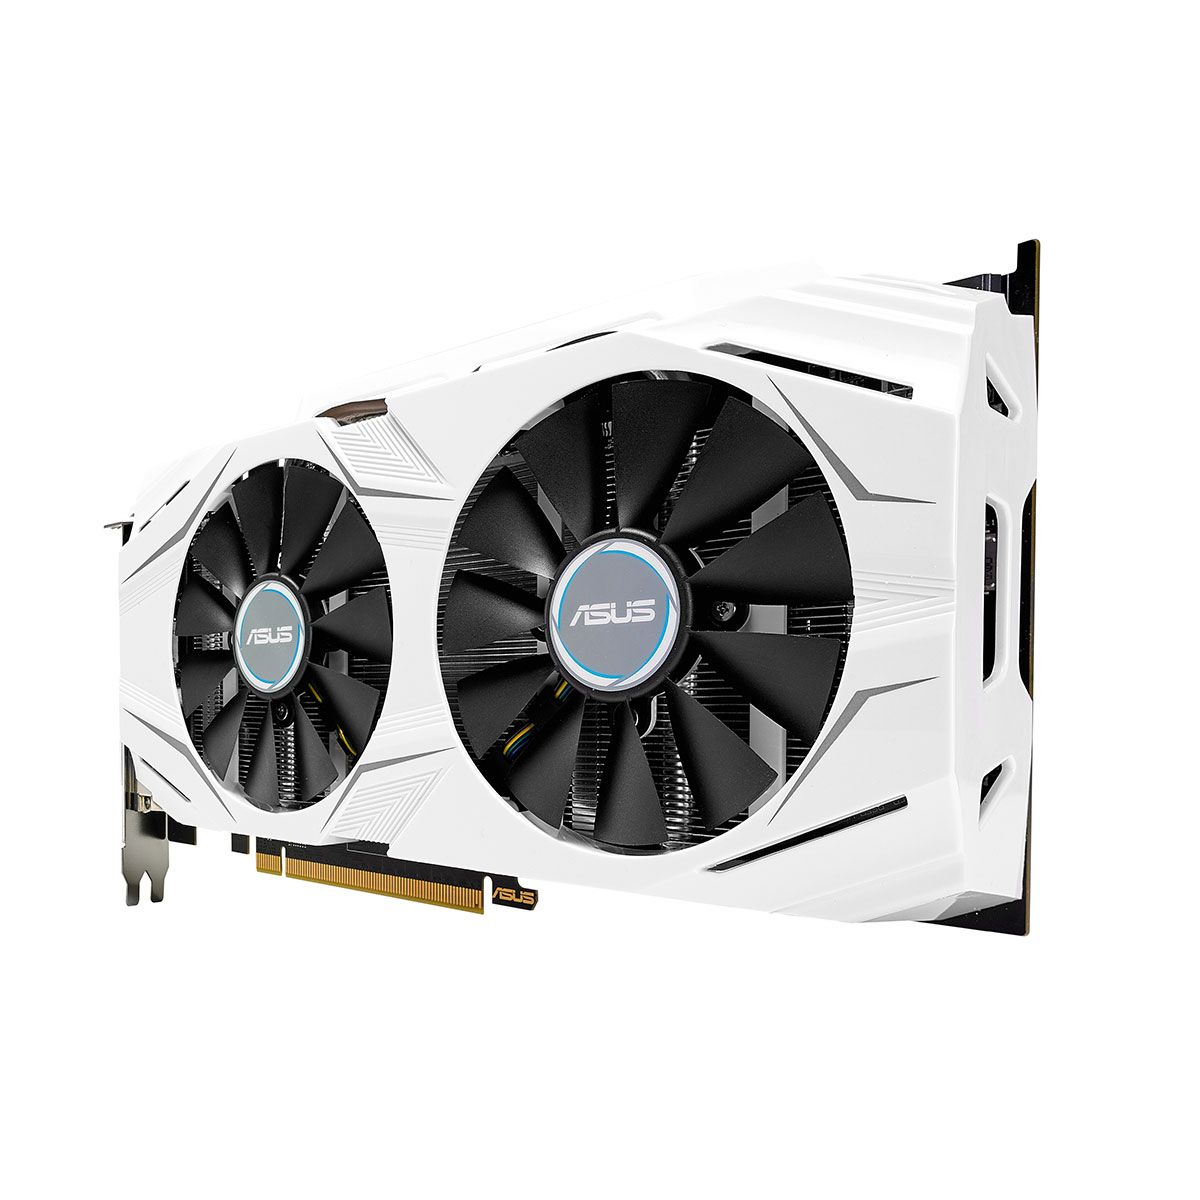 Asus Dual Gtx1060 O6g Geforce Gtx 1060 Disponible Ici La Carte